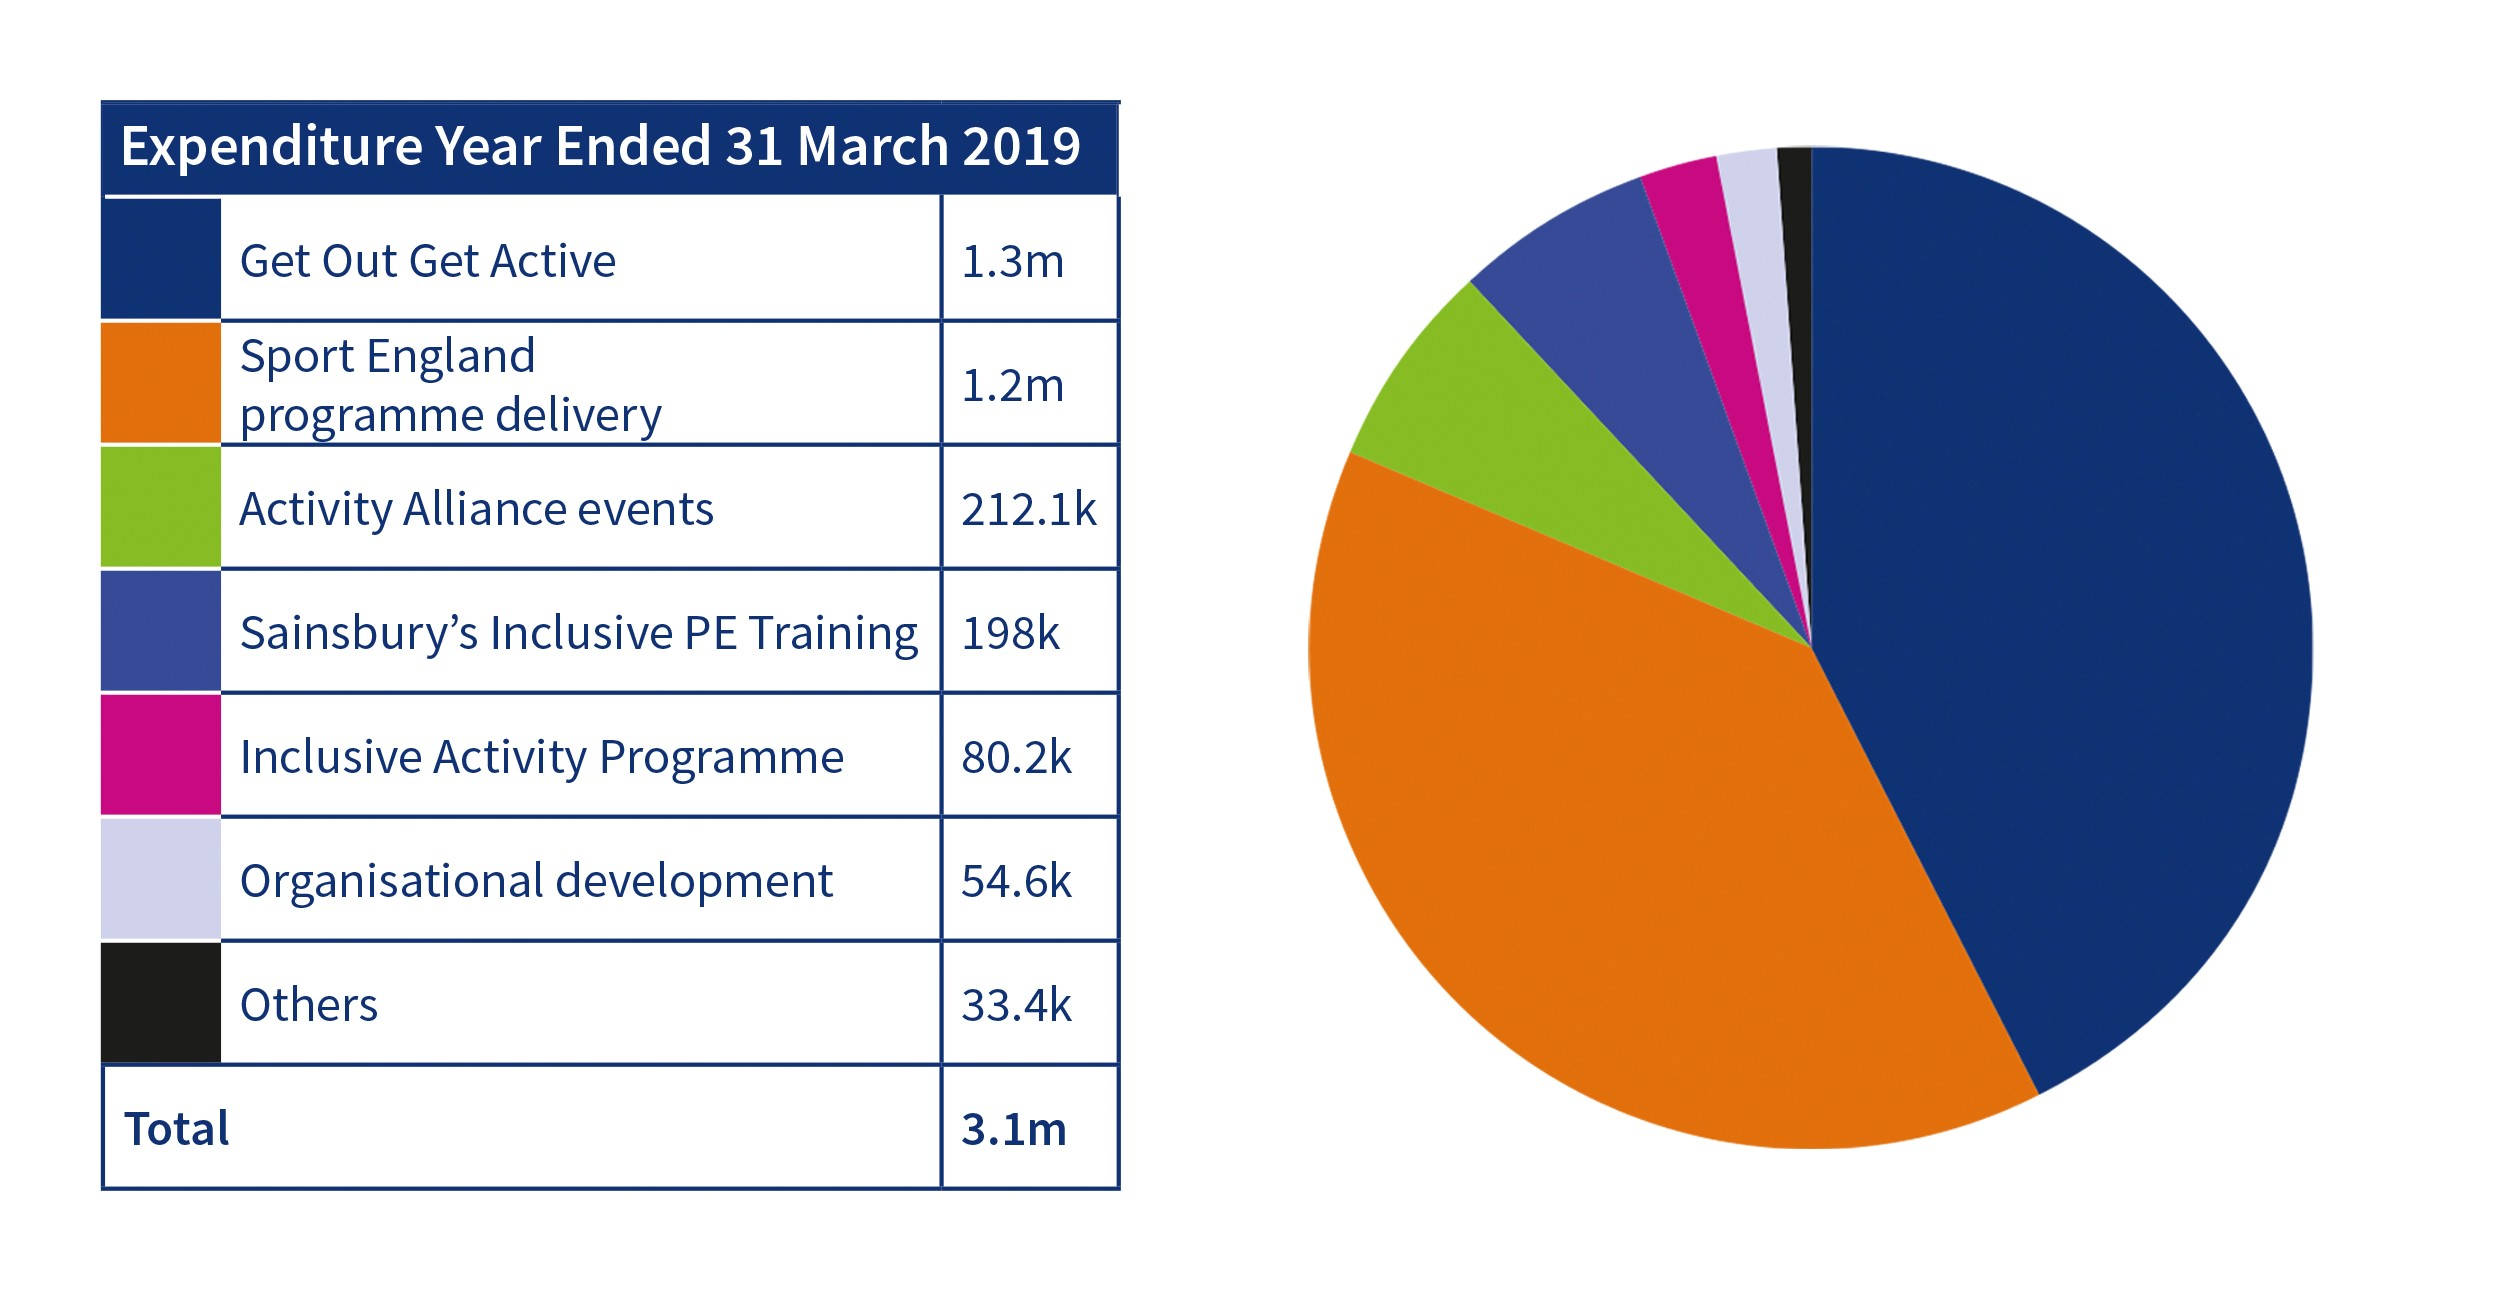 Activity Alliance expenditure year ended 31 March 2019 table and pie chart